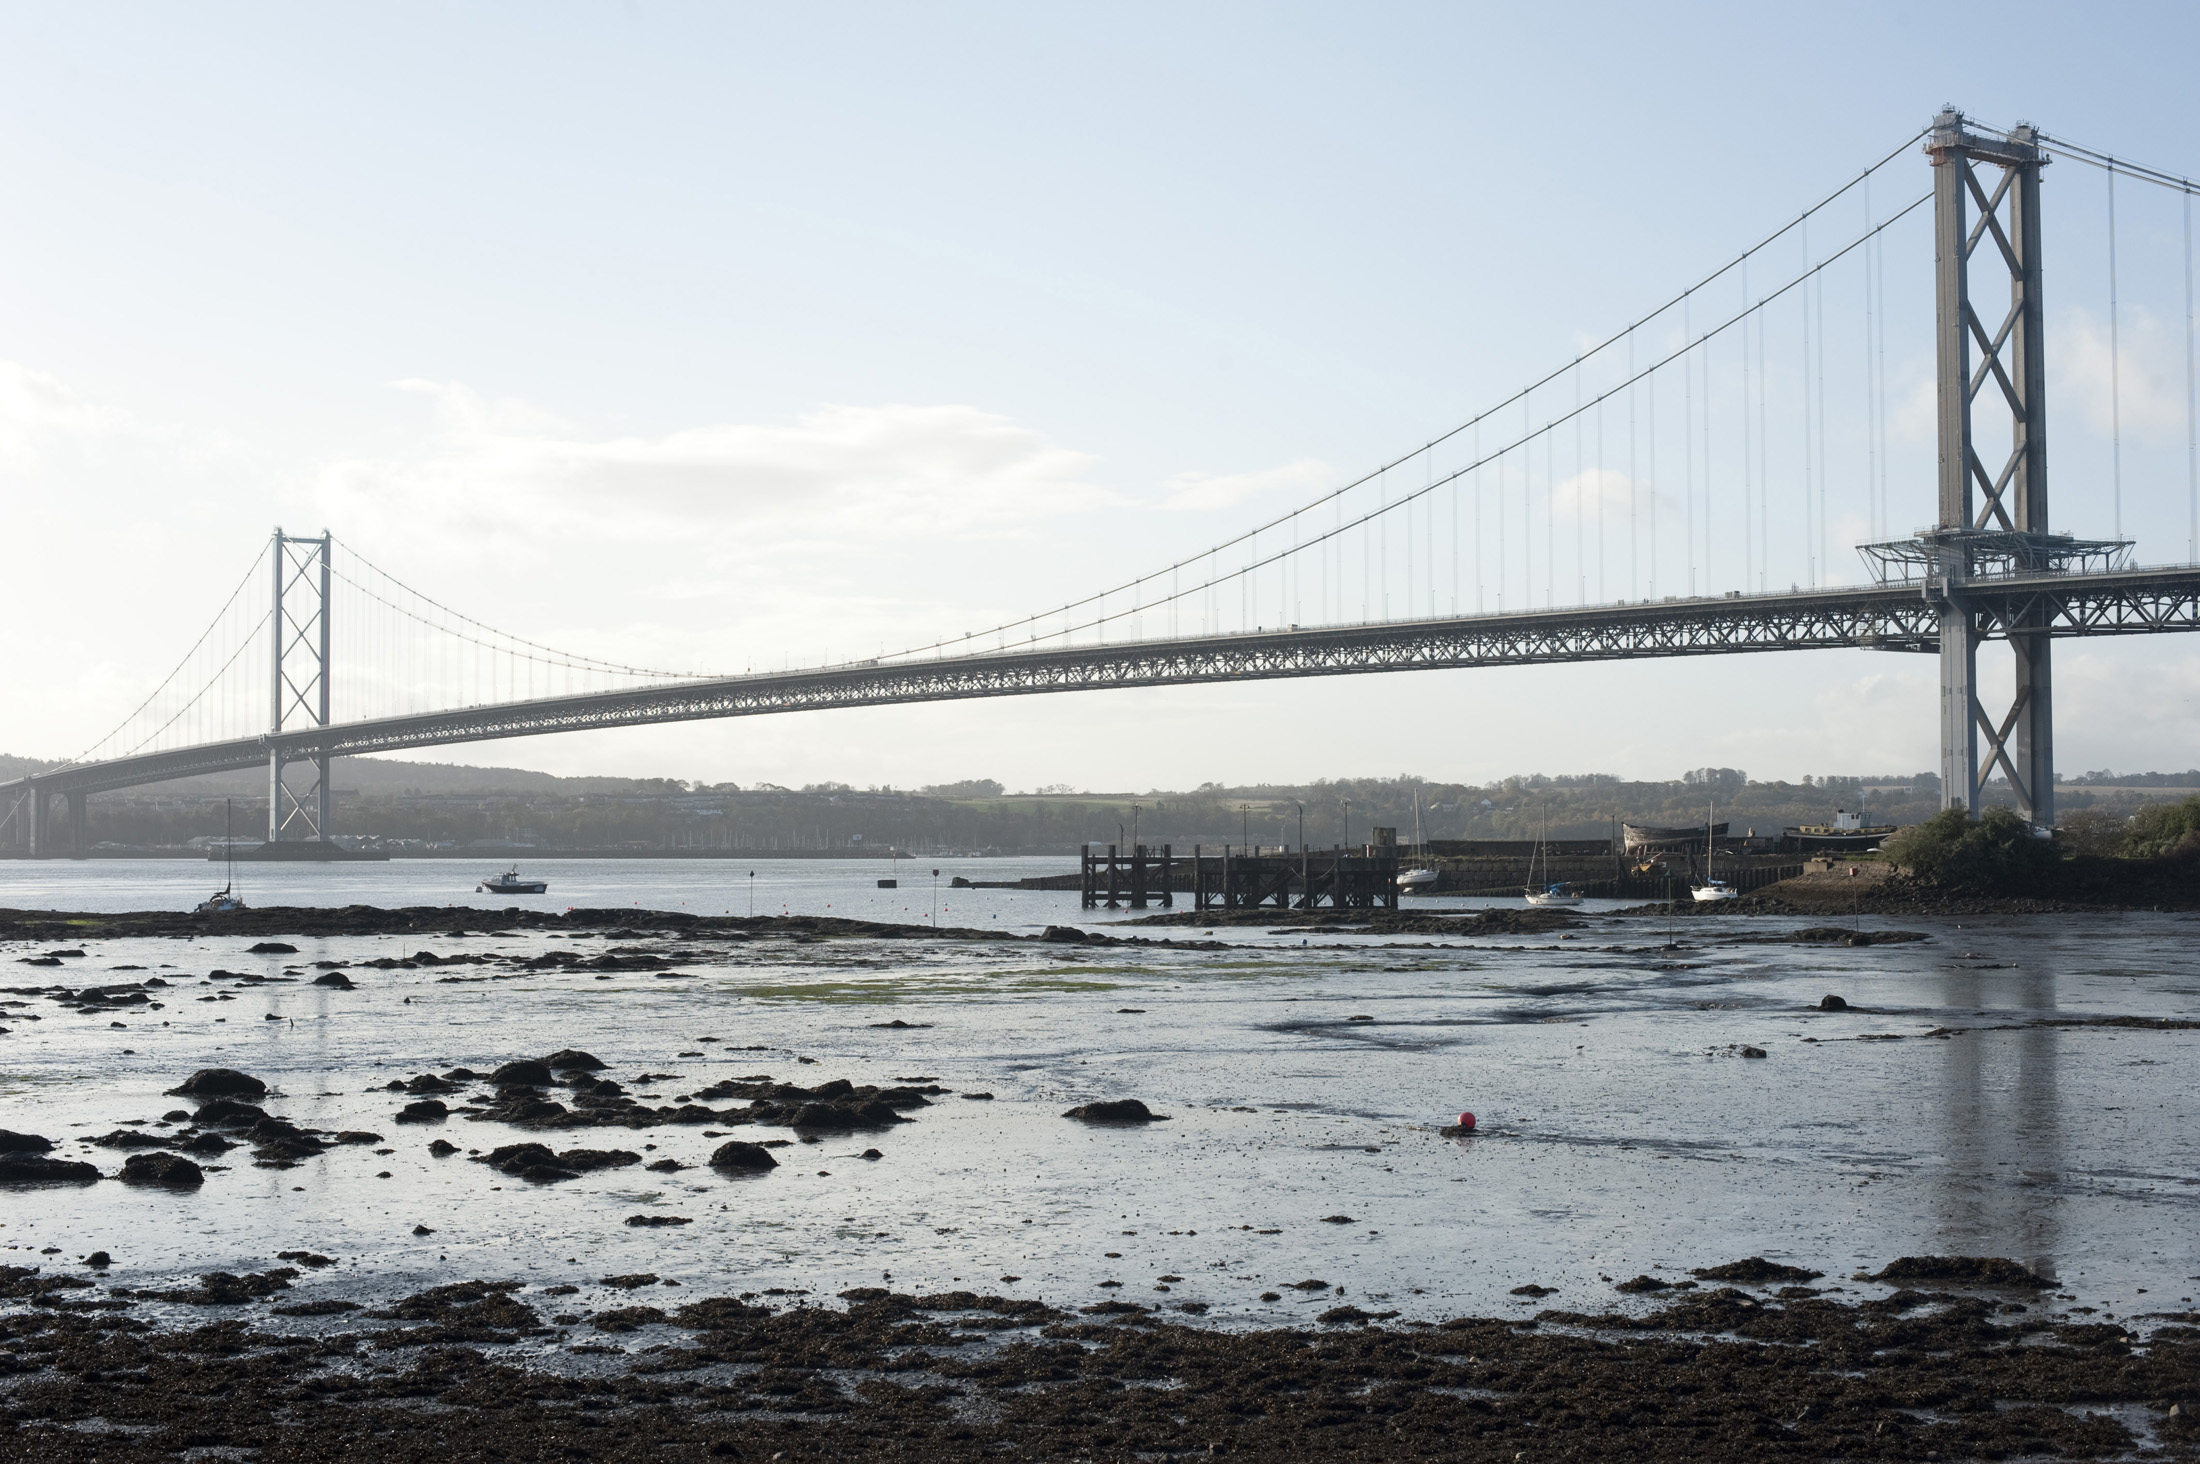 a view of the forth road bridge from north queensferry, scotland